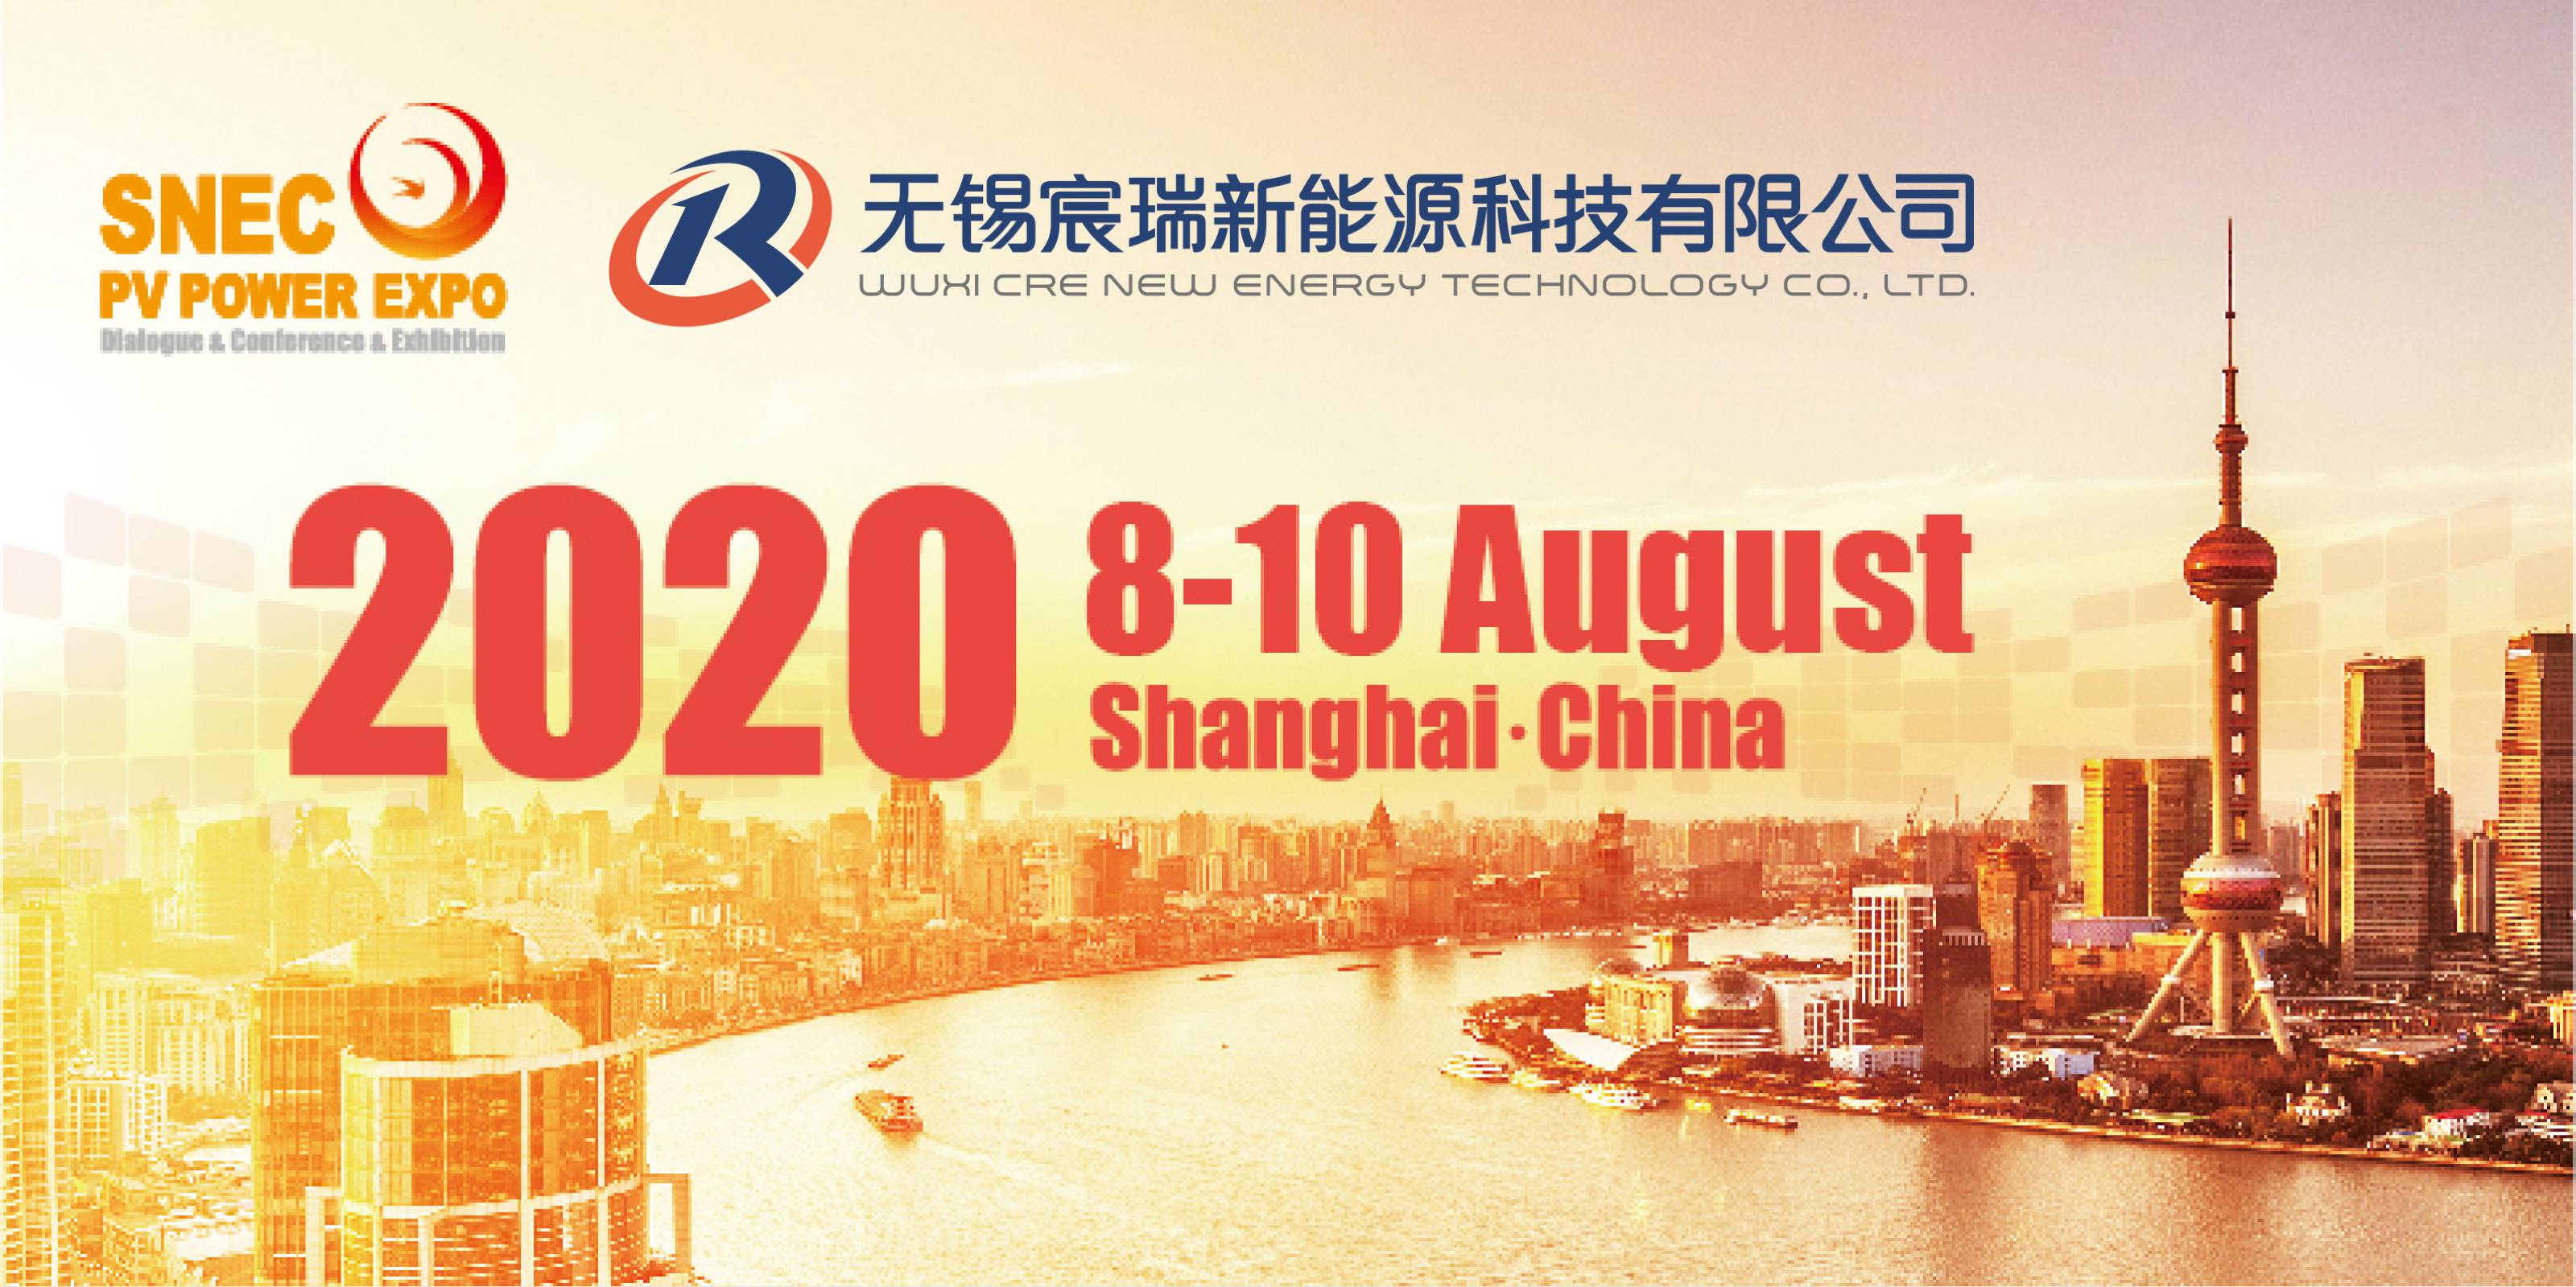 CRE NEW ENERGY Attended 14th (2020) SNEC PV POWER EXPO in Shanghai